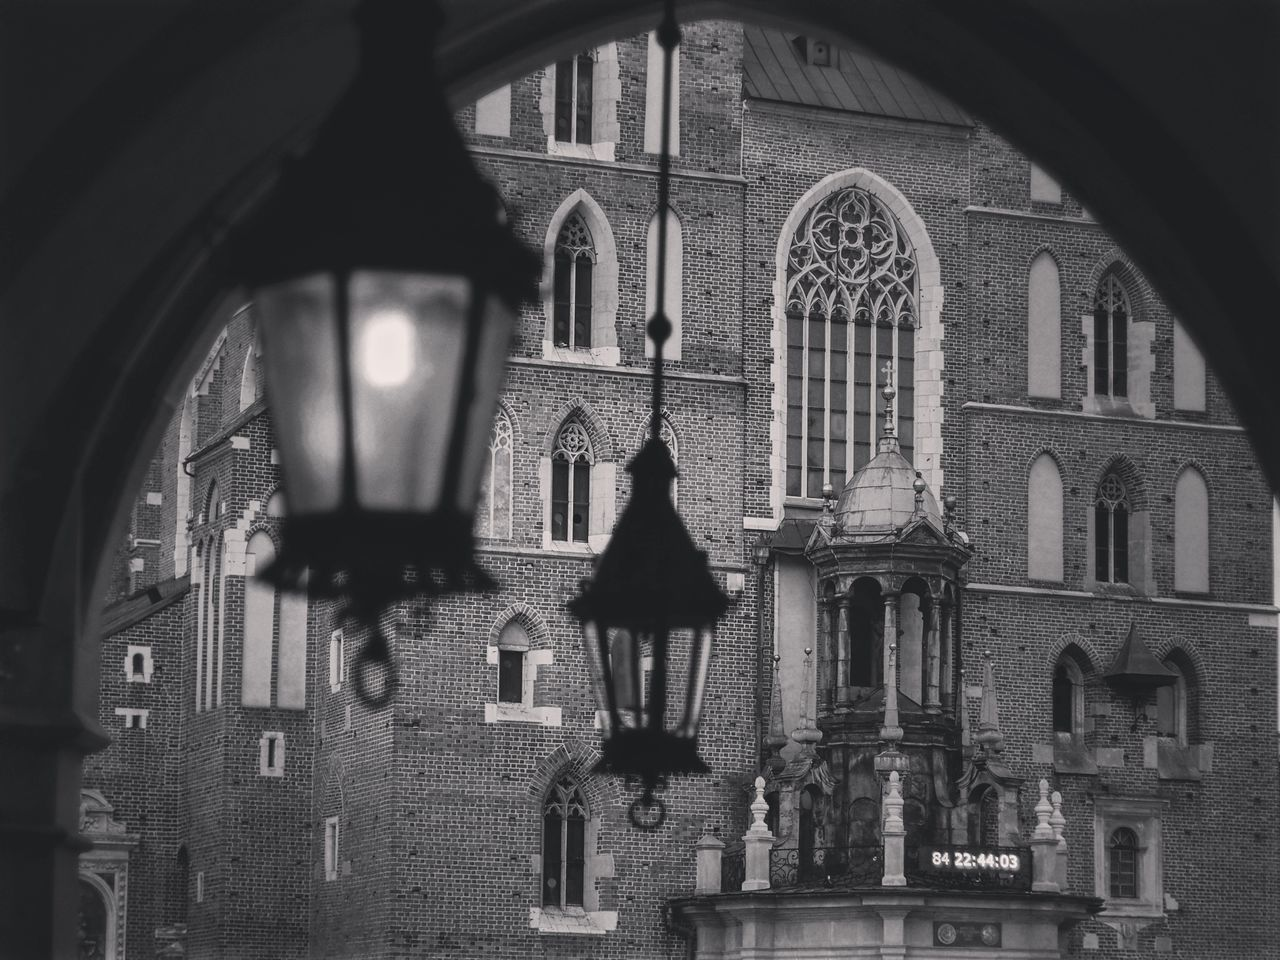 Low Angle View Of Hanging Lanterns Against Built Structure